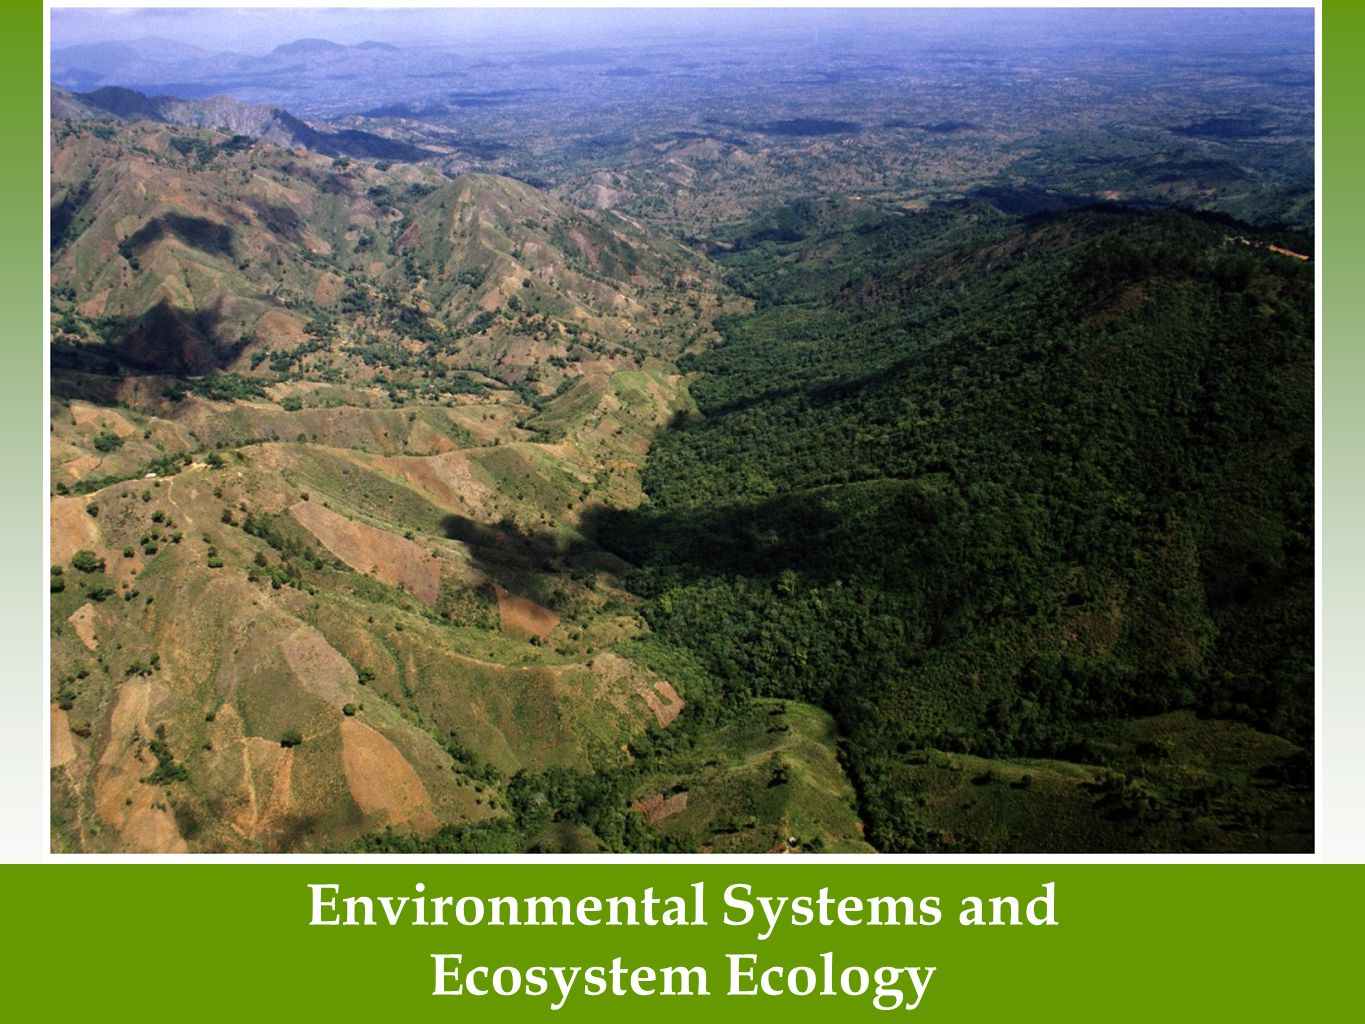 Environmental Systems and